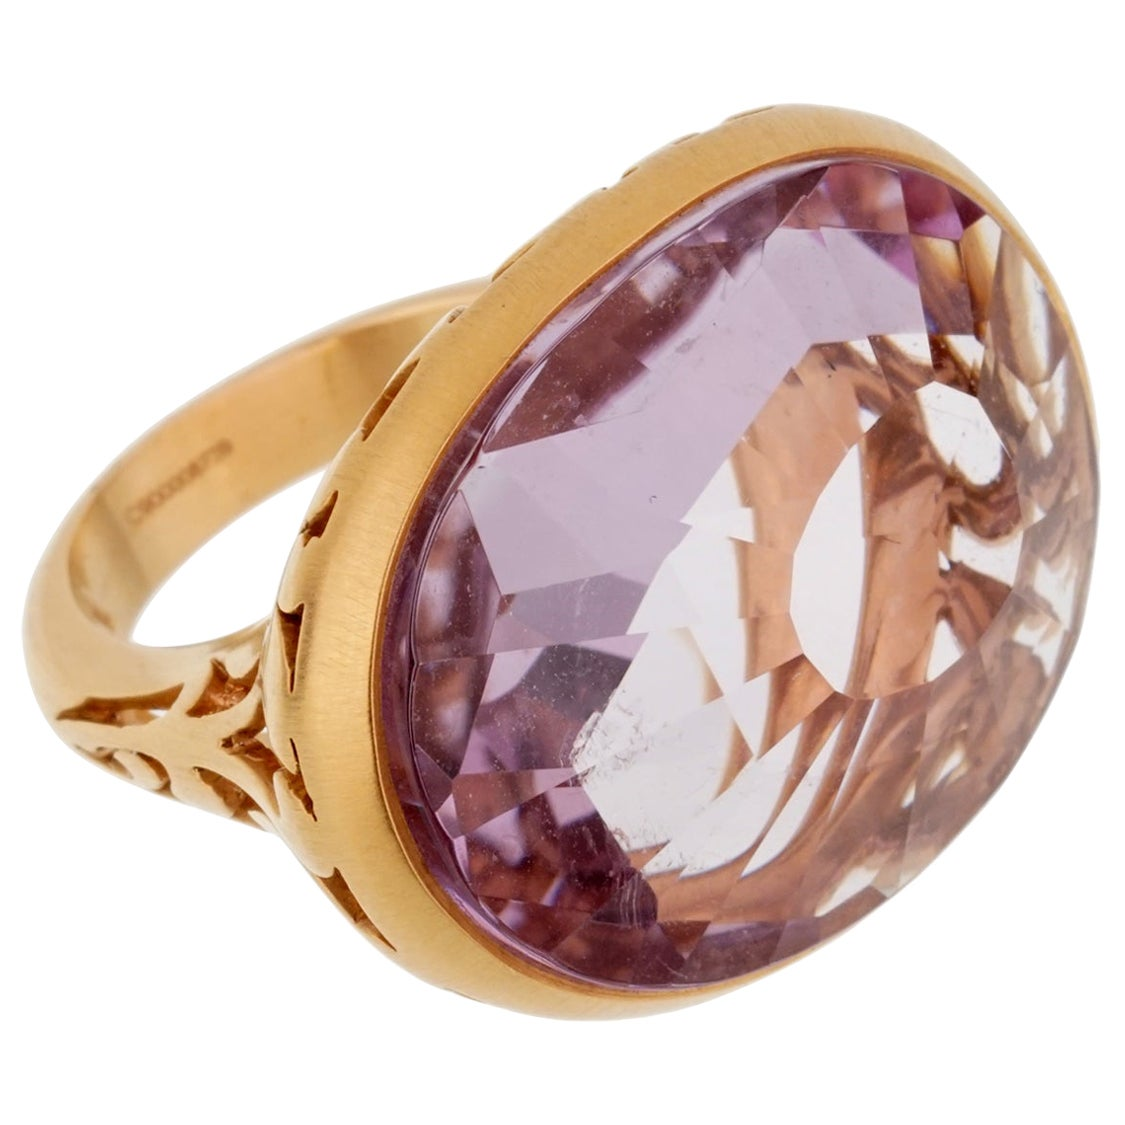 Pomellato 10 Carat Amethyst Cocktail Rose Gold Ring